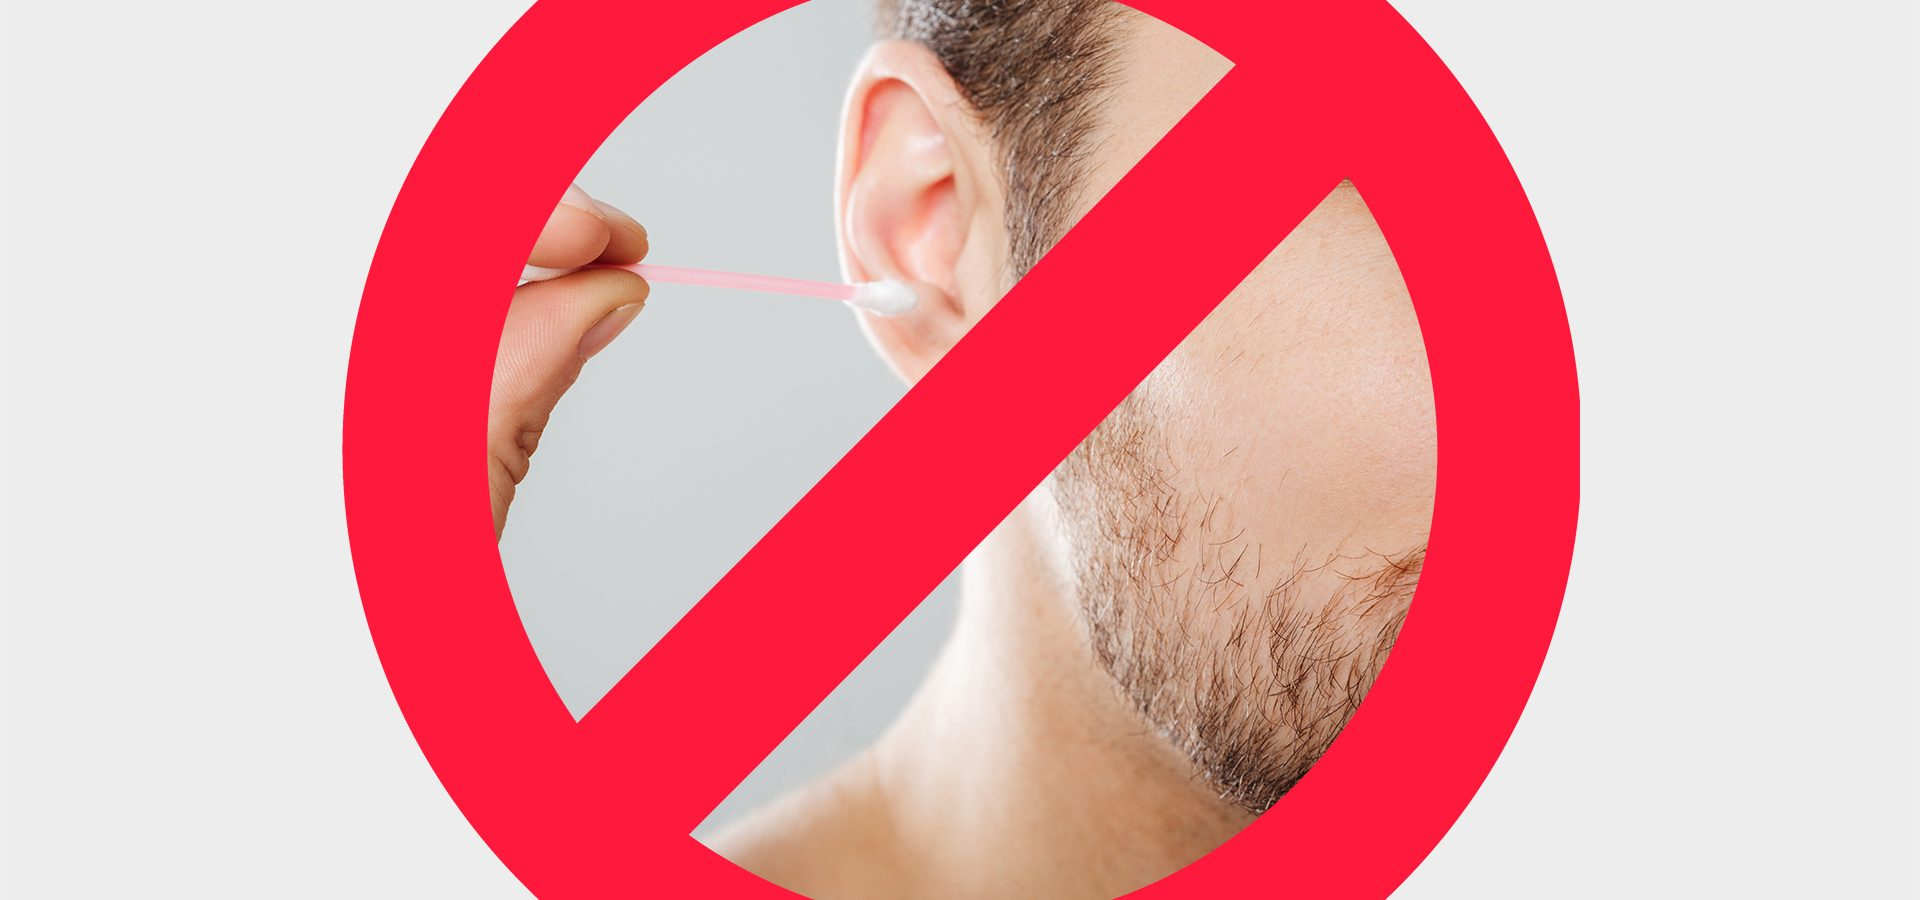 Cleaning ears with cotton swabs is prohibited